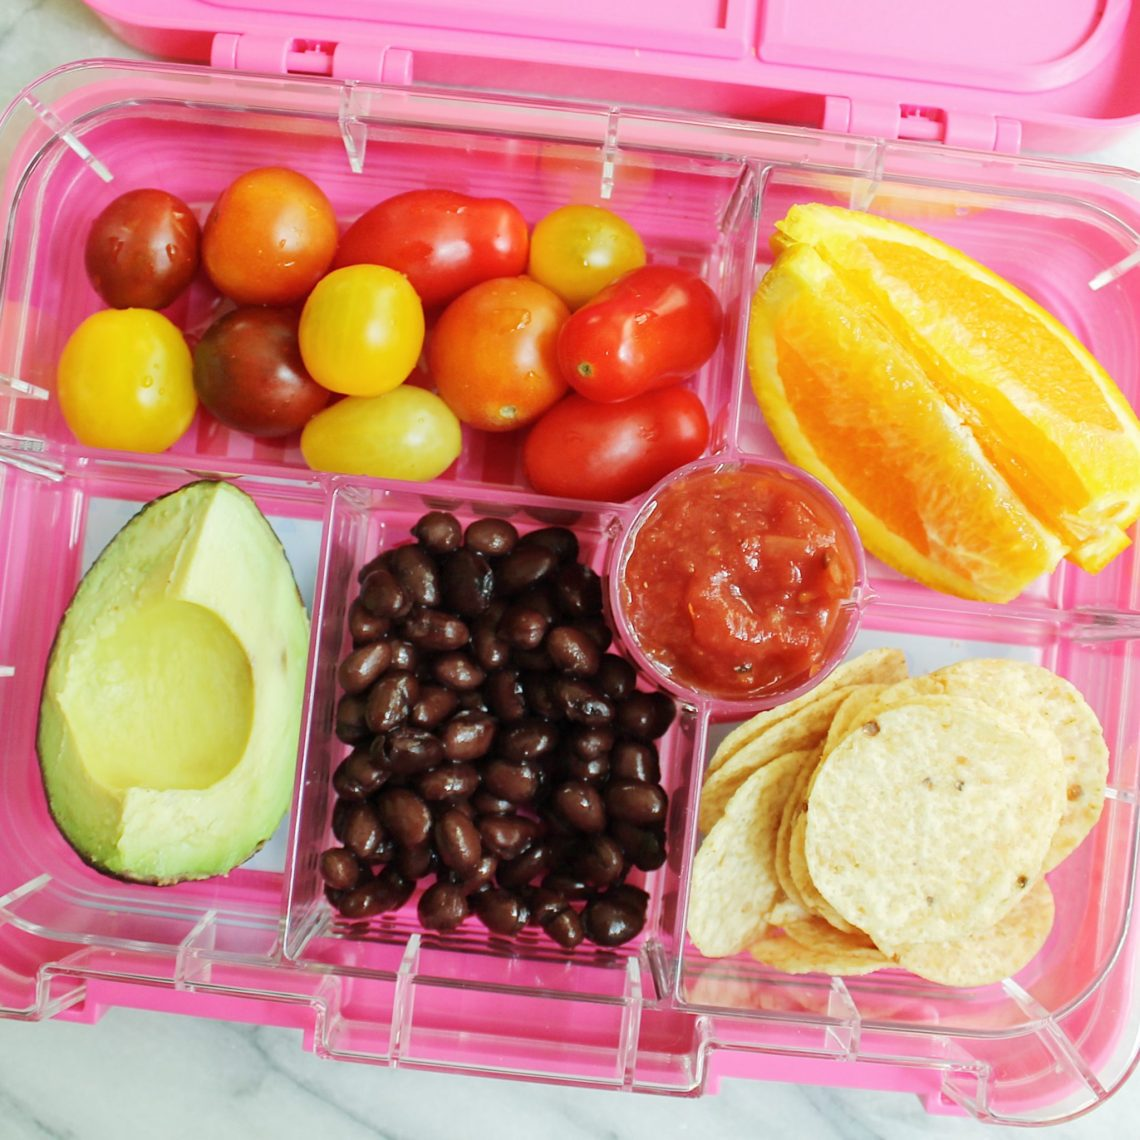 4 Nut and Dairy Free Ideas for School Lunch | sunshineandholly.com | #sponsored | #affiliatelink | back to school | back-to-school lunch ideas | lunch boxes | lunch containers for kids